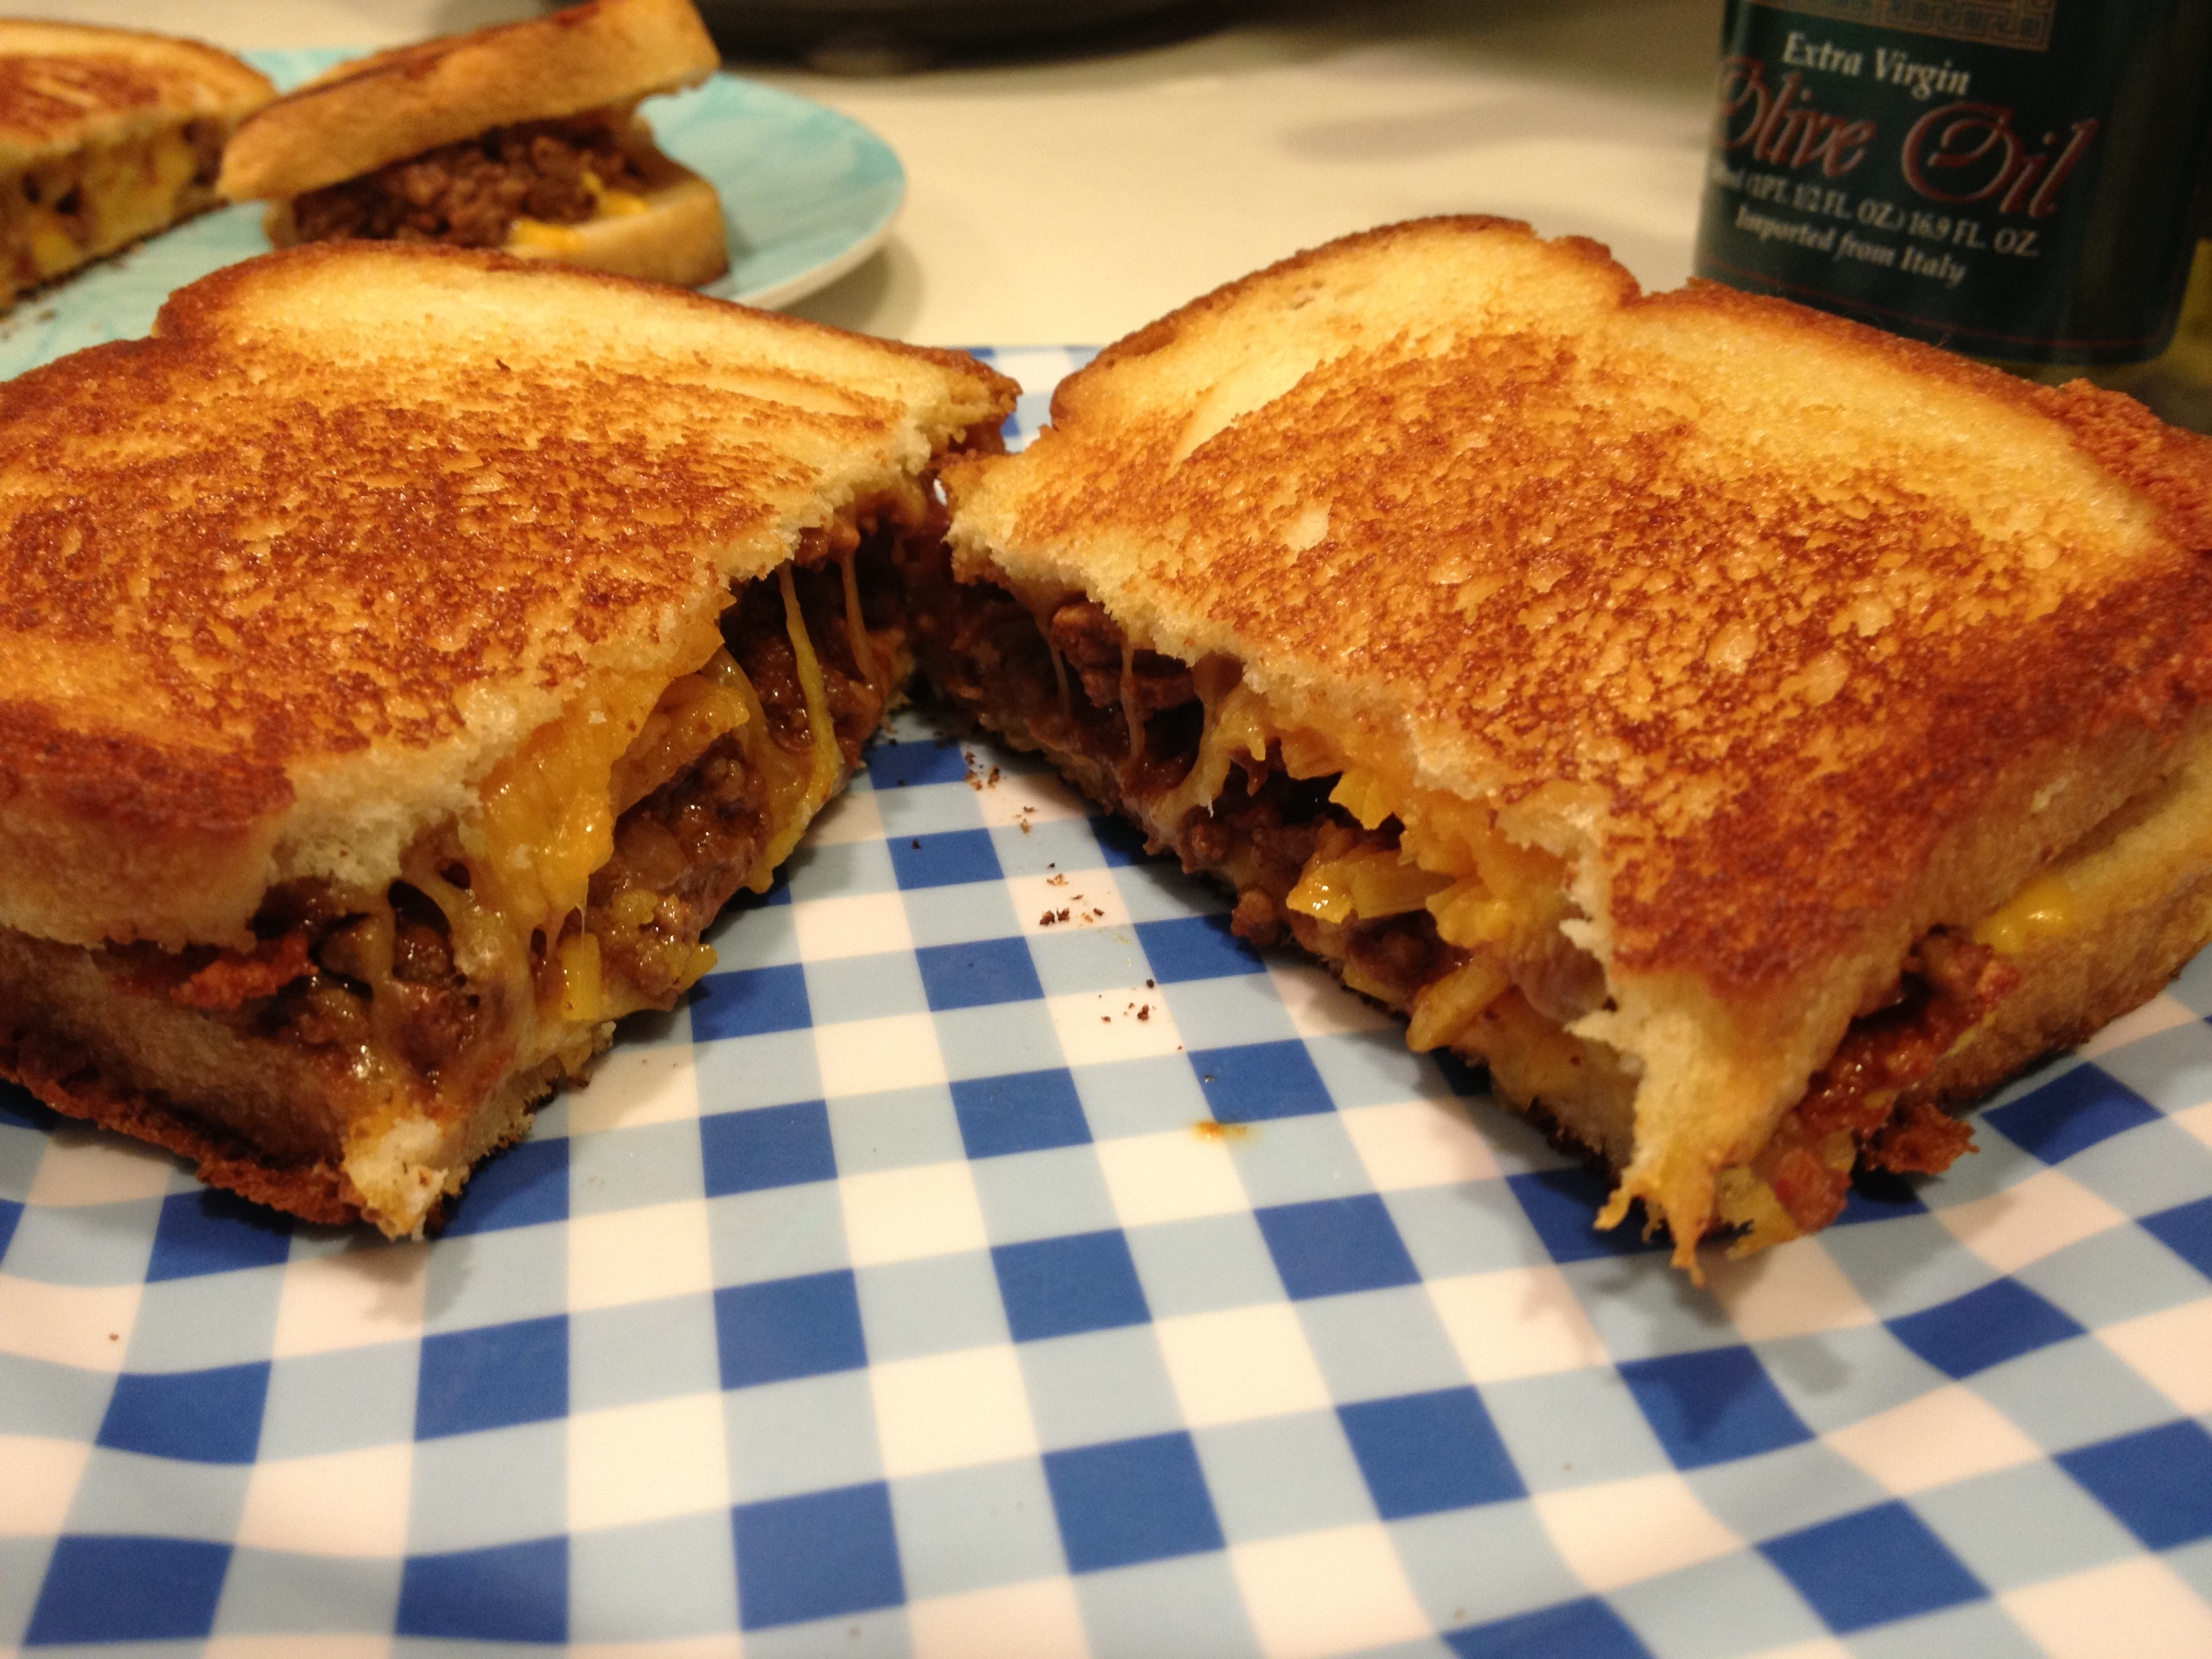 Chili Grilled Cheese Sandwich, a Happy Union of Two Comfort Foods ...